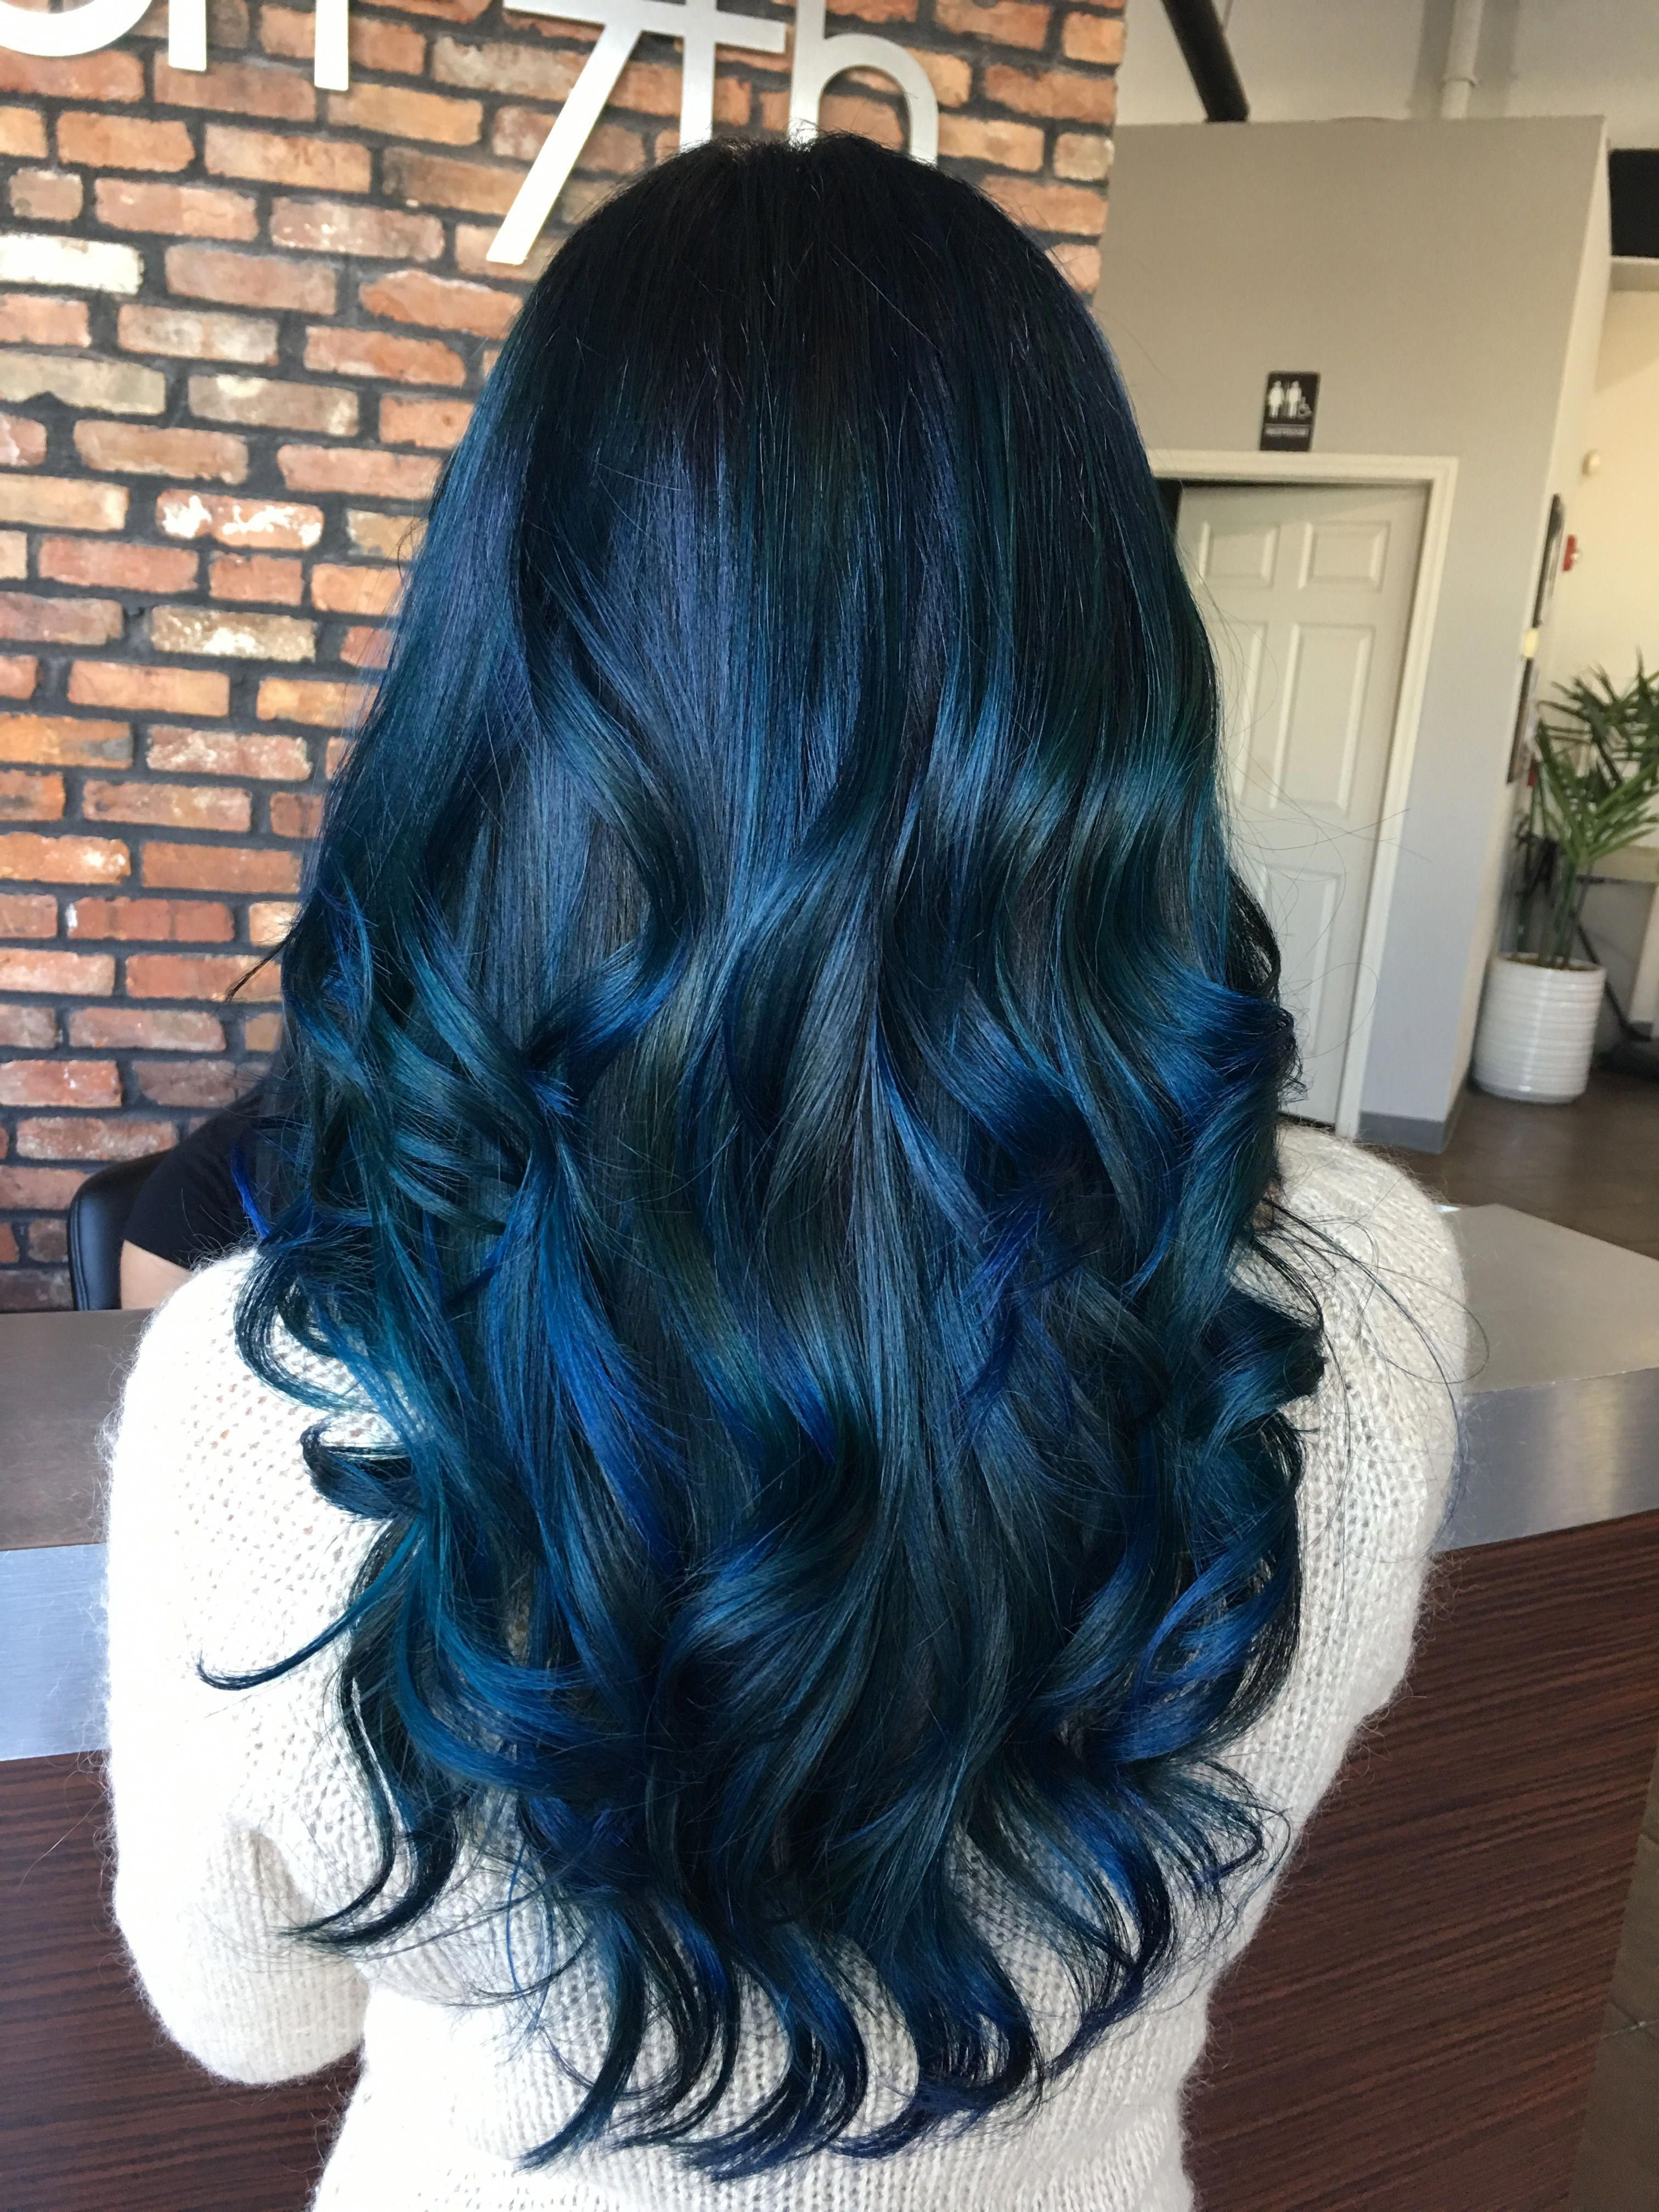 23 Hottest Short Weave Hairstyles In 2019 In 2020 Blue Hair